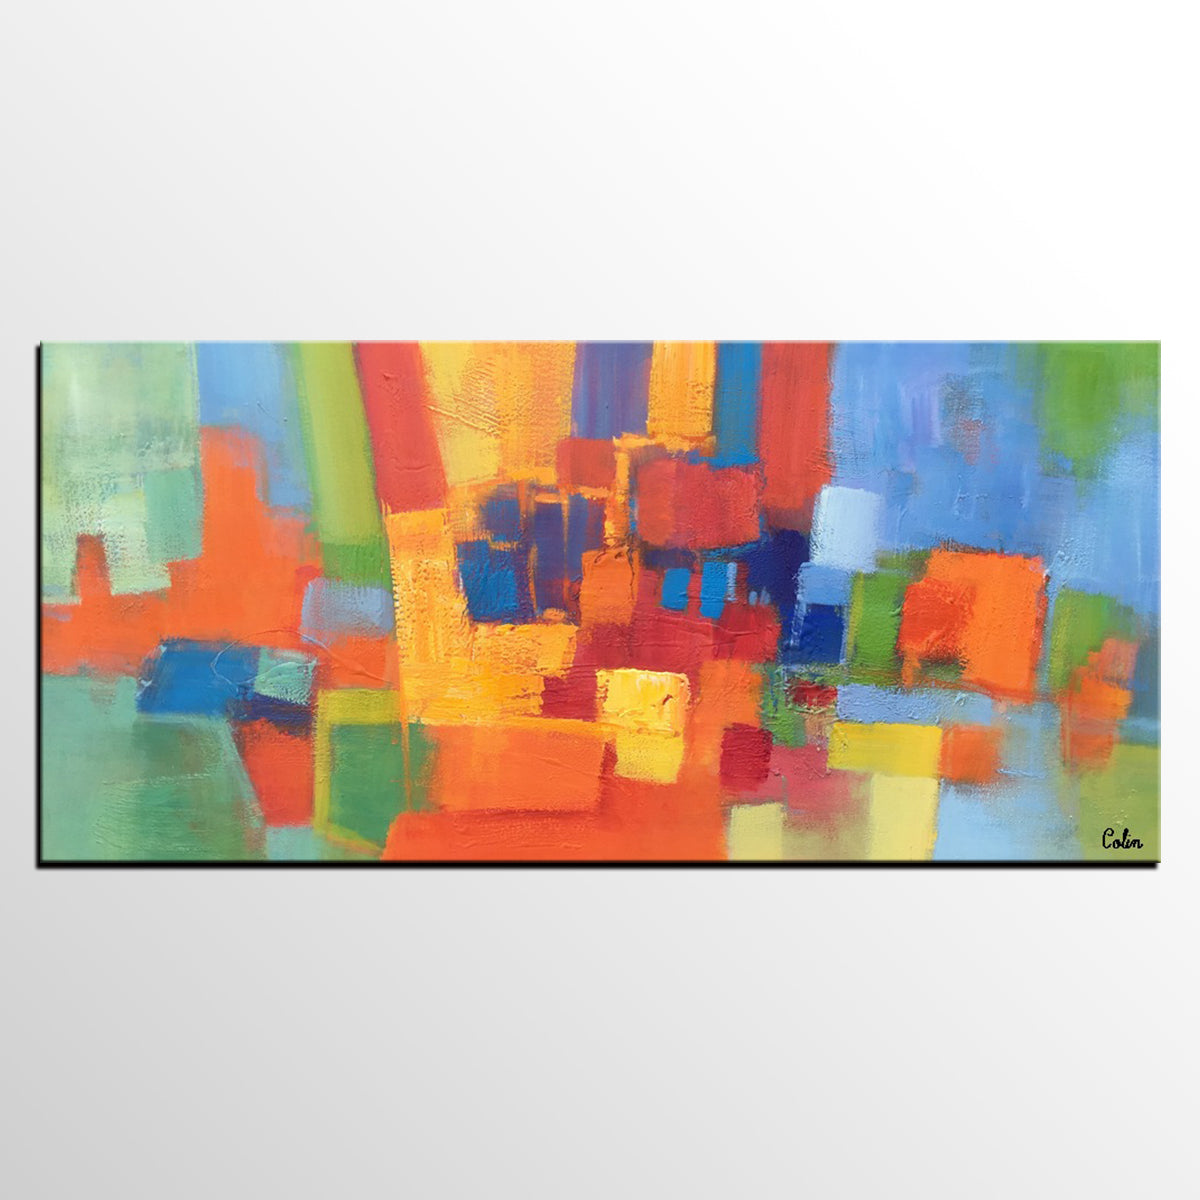 Abstract Painting, Abstract Art, Bedroom Wall Art, Canvas Art Painting, Art on Canvas - artworkcanvas